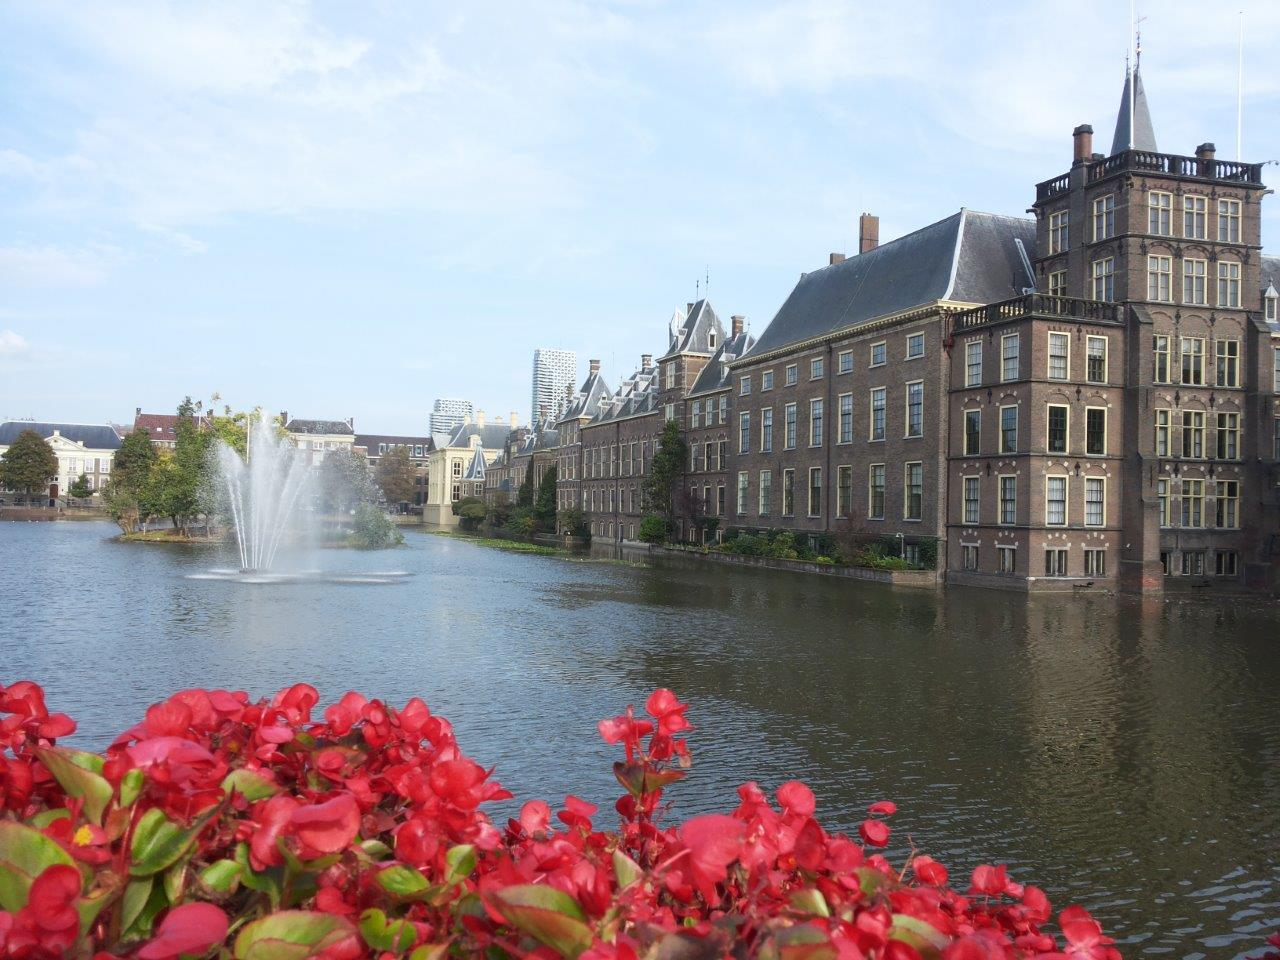 Is The Hague Worth Visiting? – The Netherlands' Third Largest City